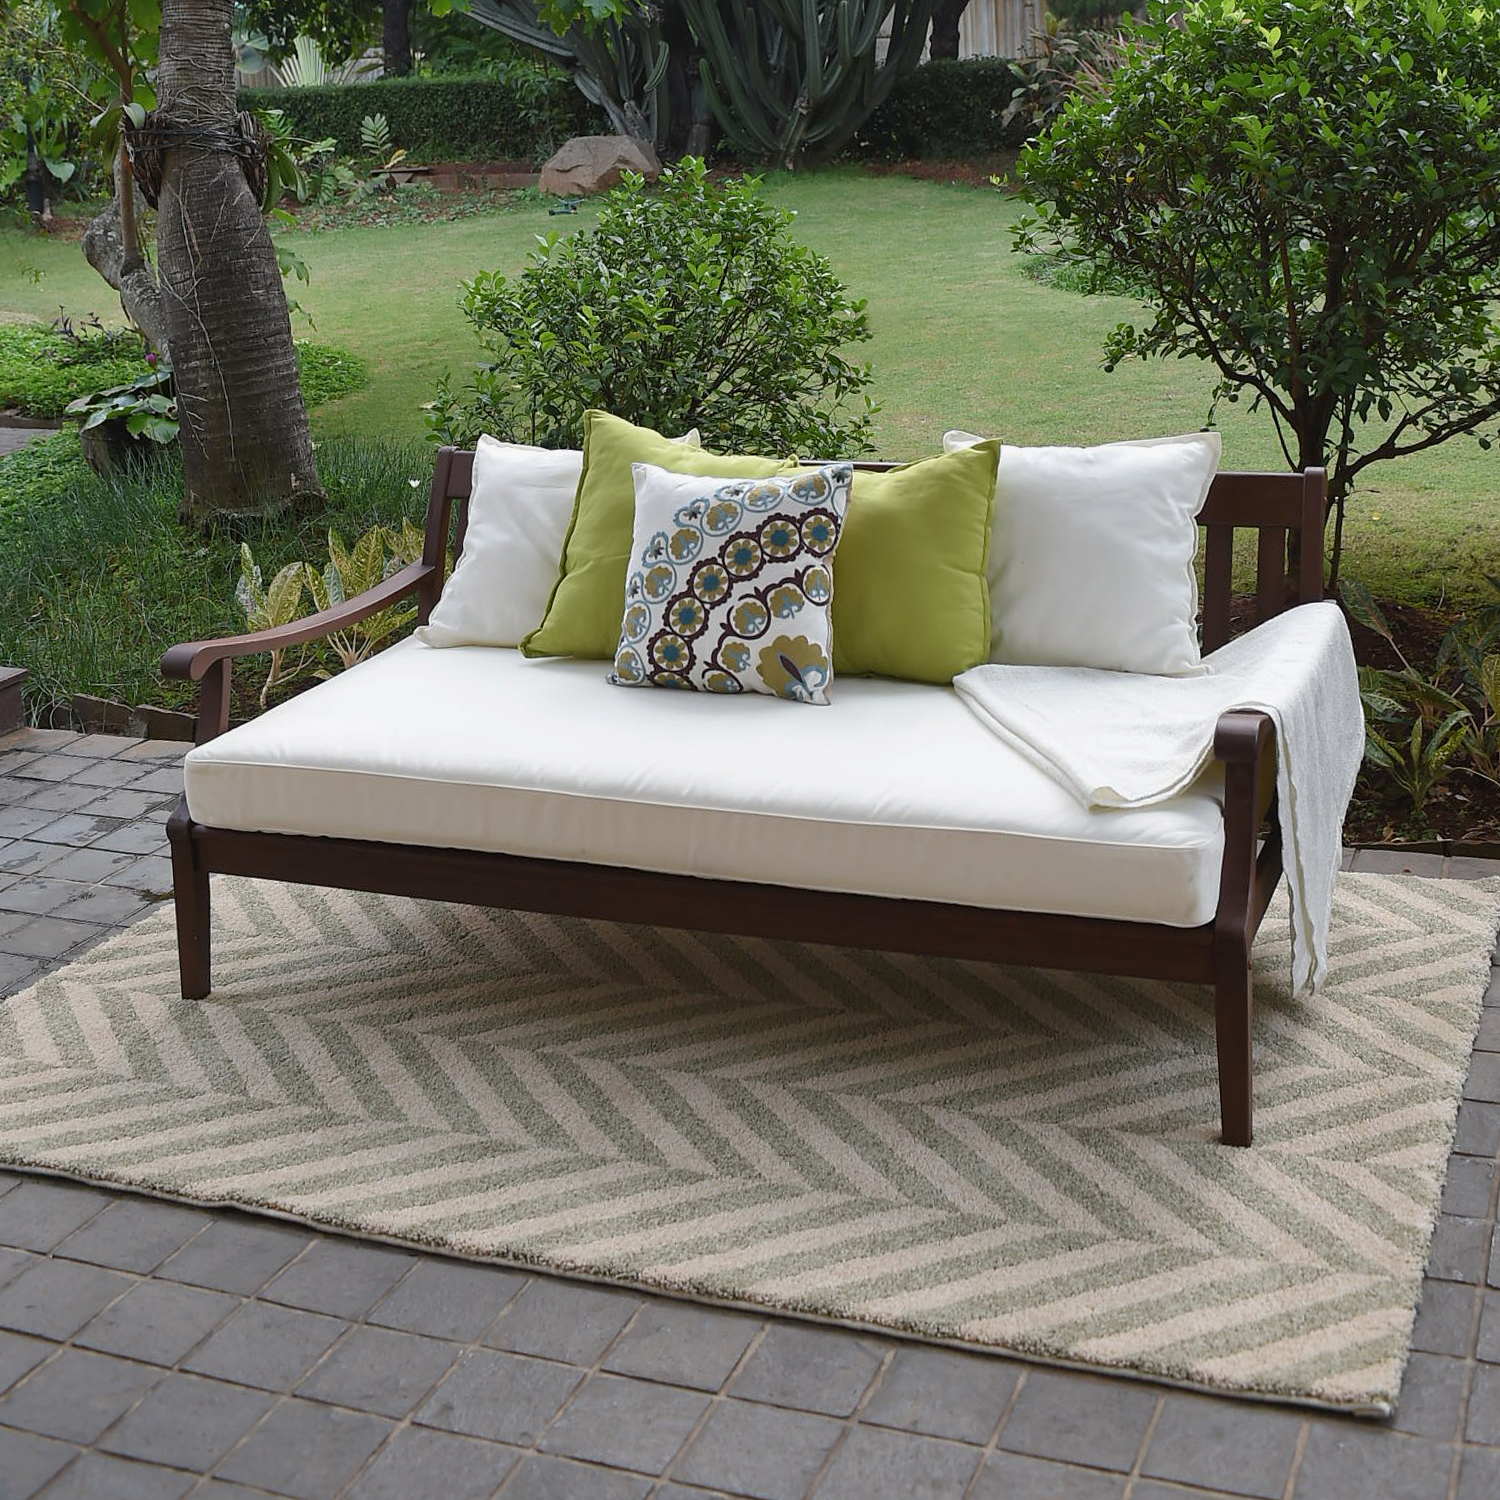 Alston Wood Outdoor Sofa Daybed with White Cushion - Walmart.com